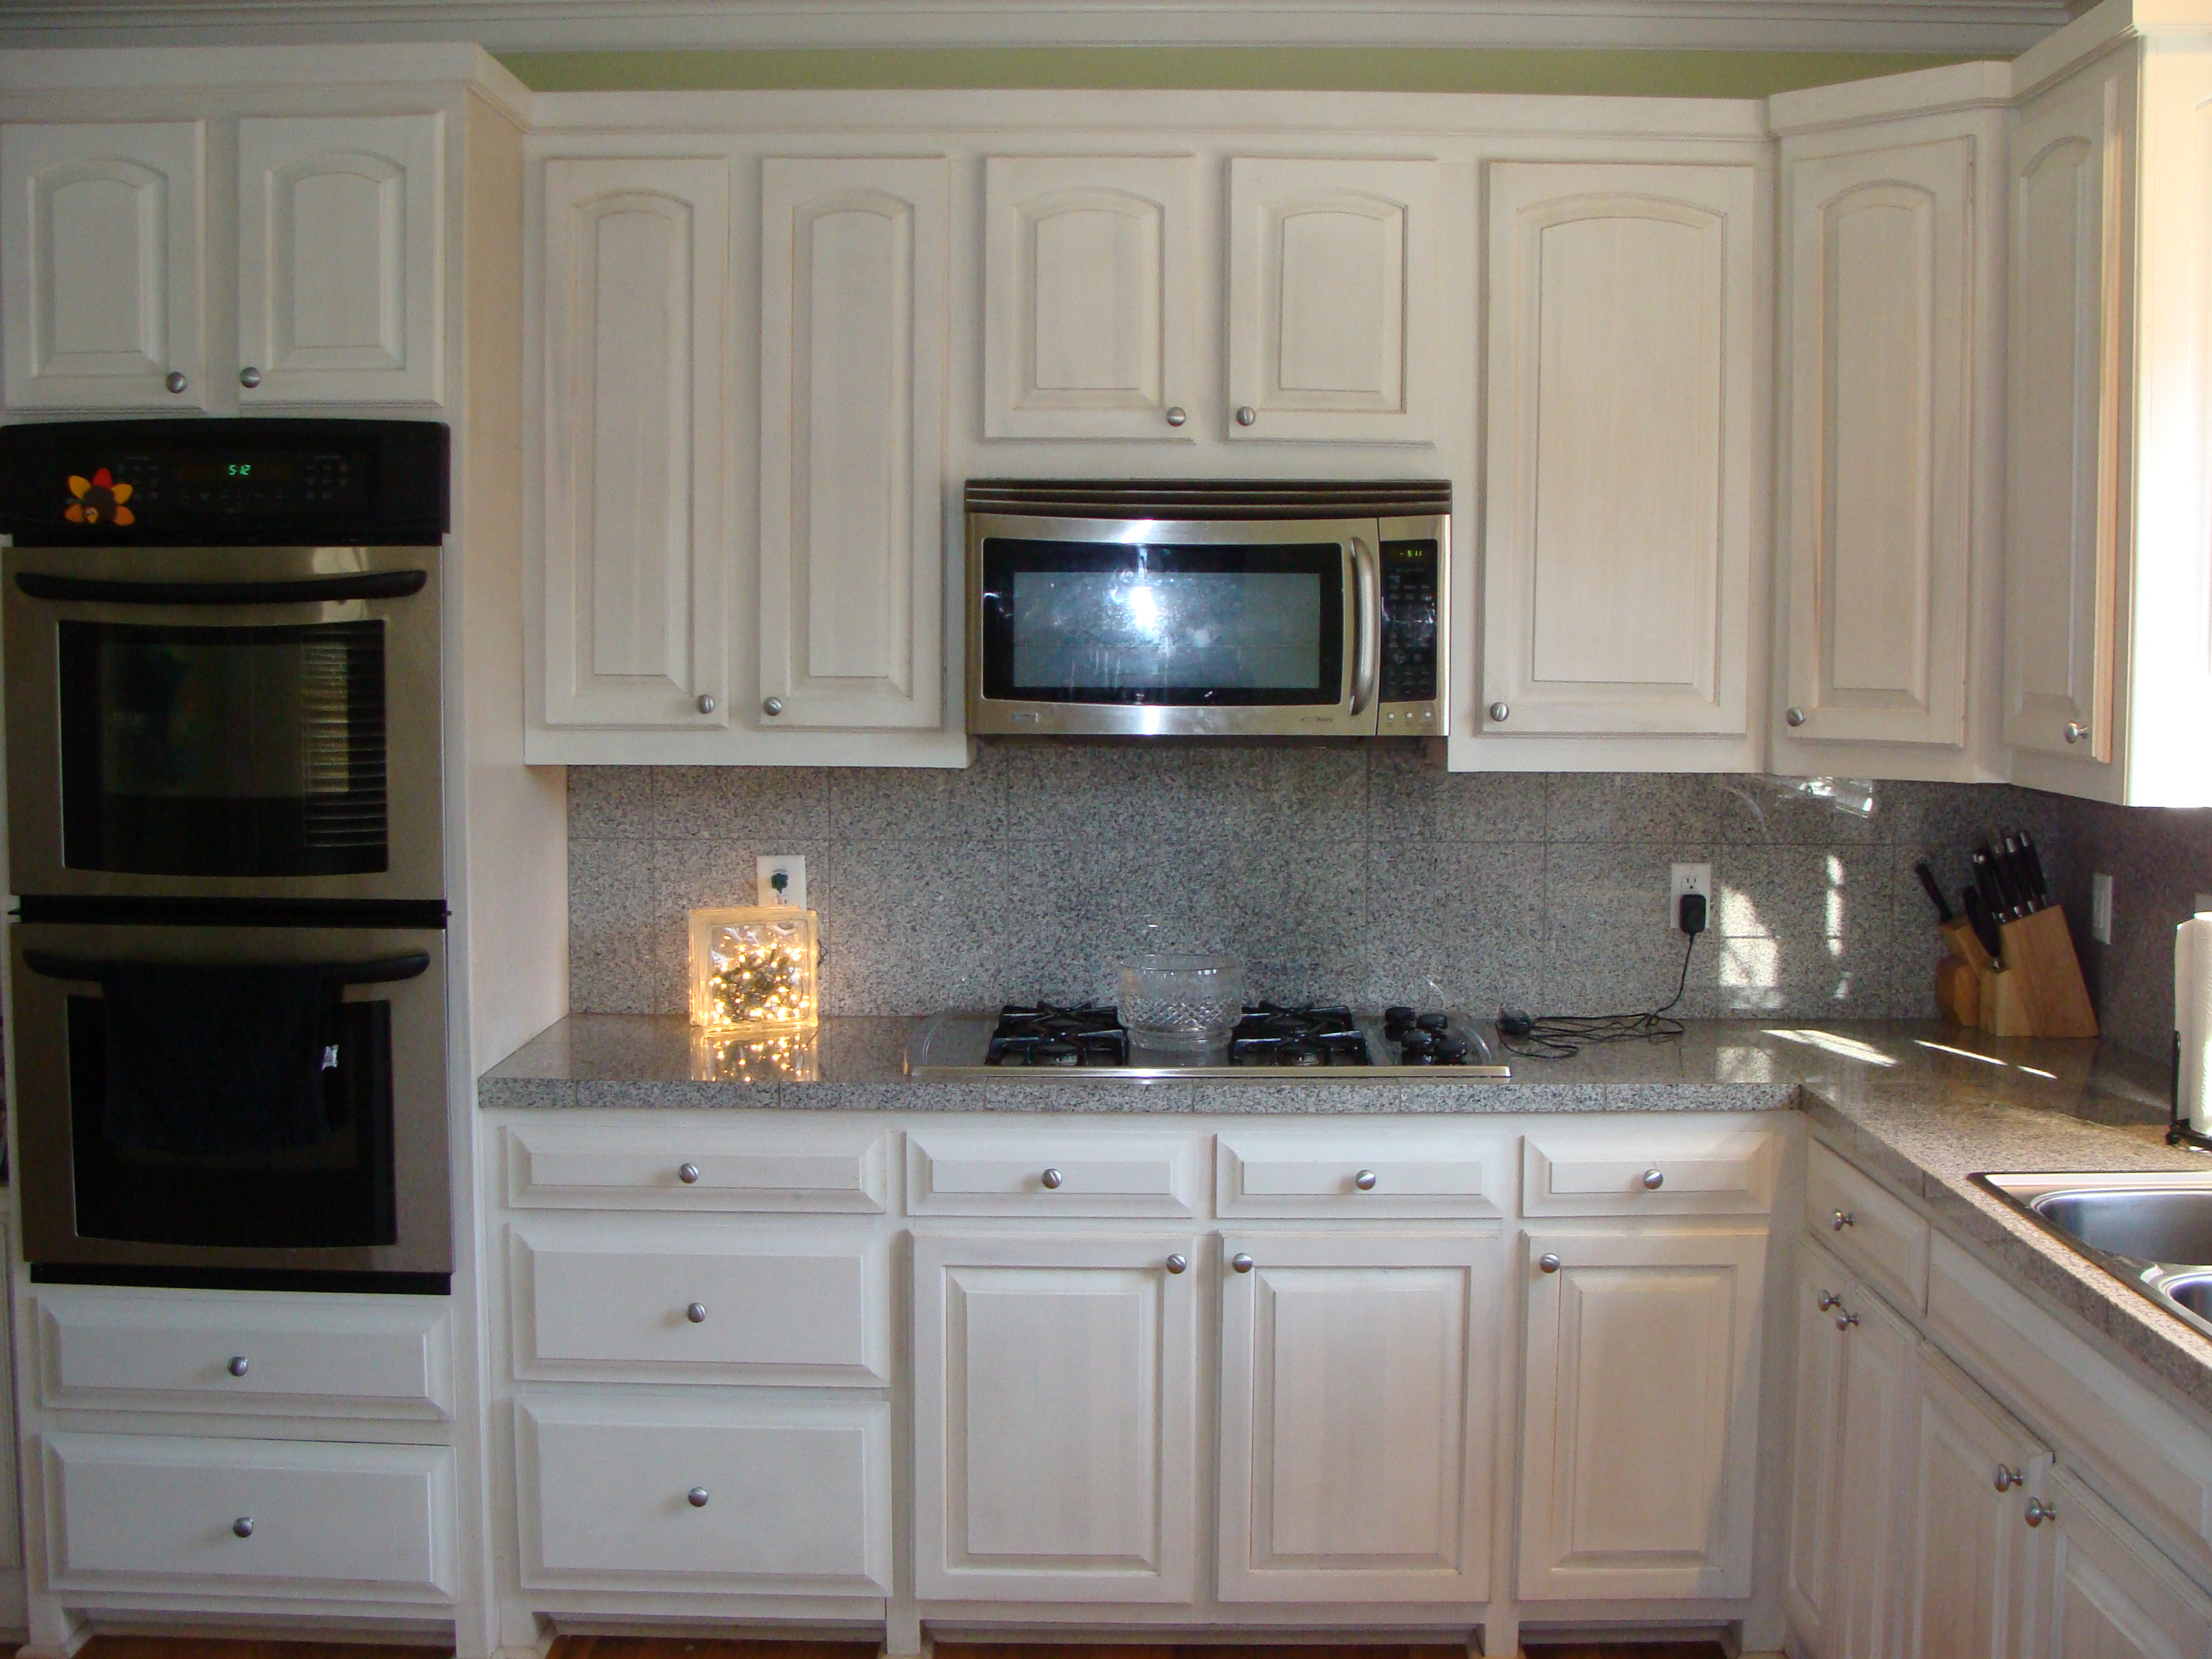 Kitchen cabinet with drawers photo - 2